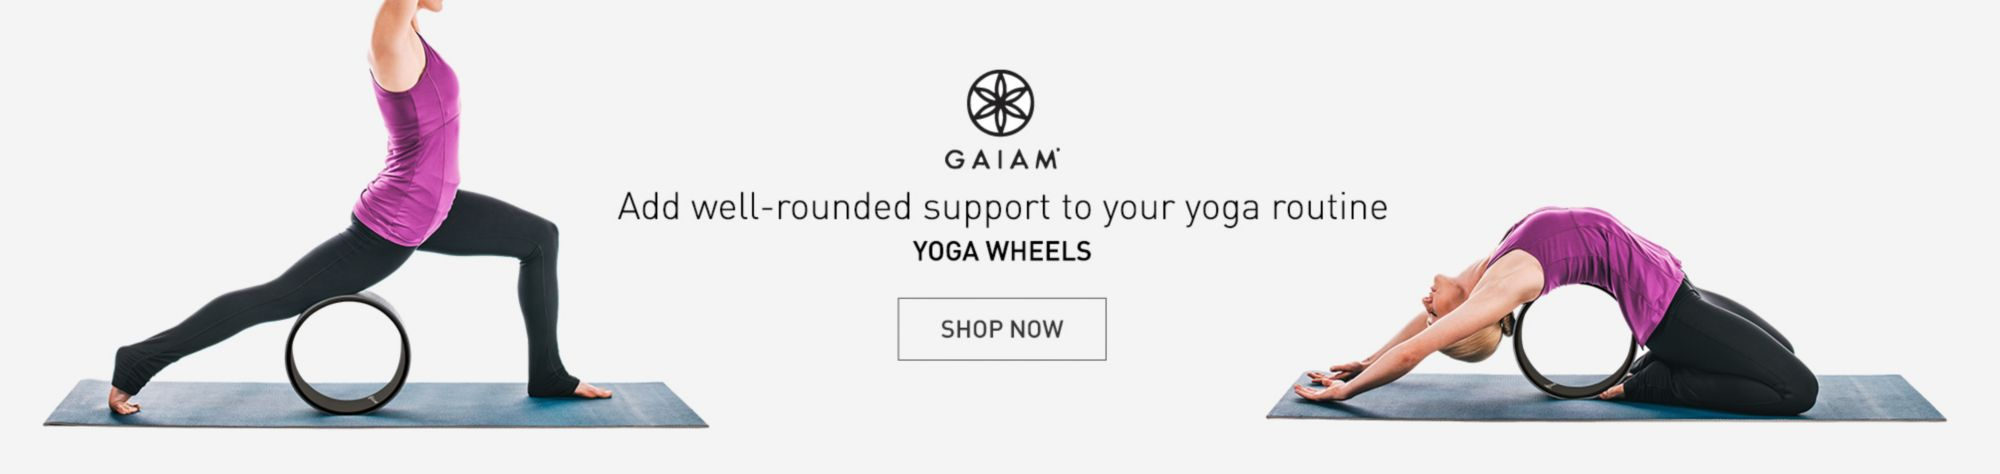 Gaiam Yoga Wheels Shop Now